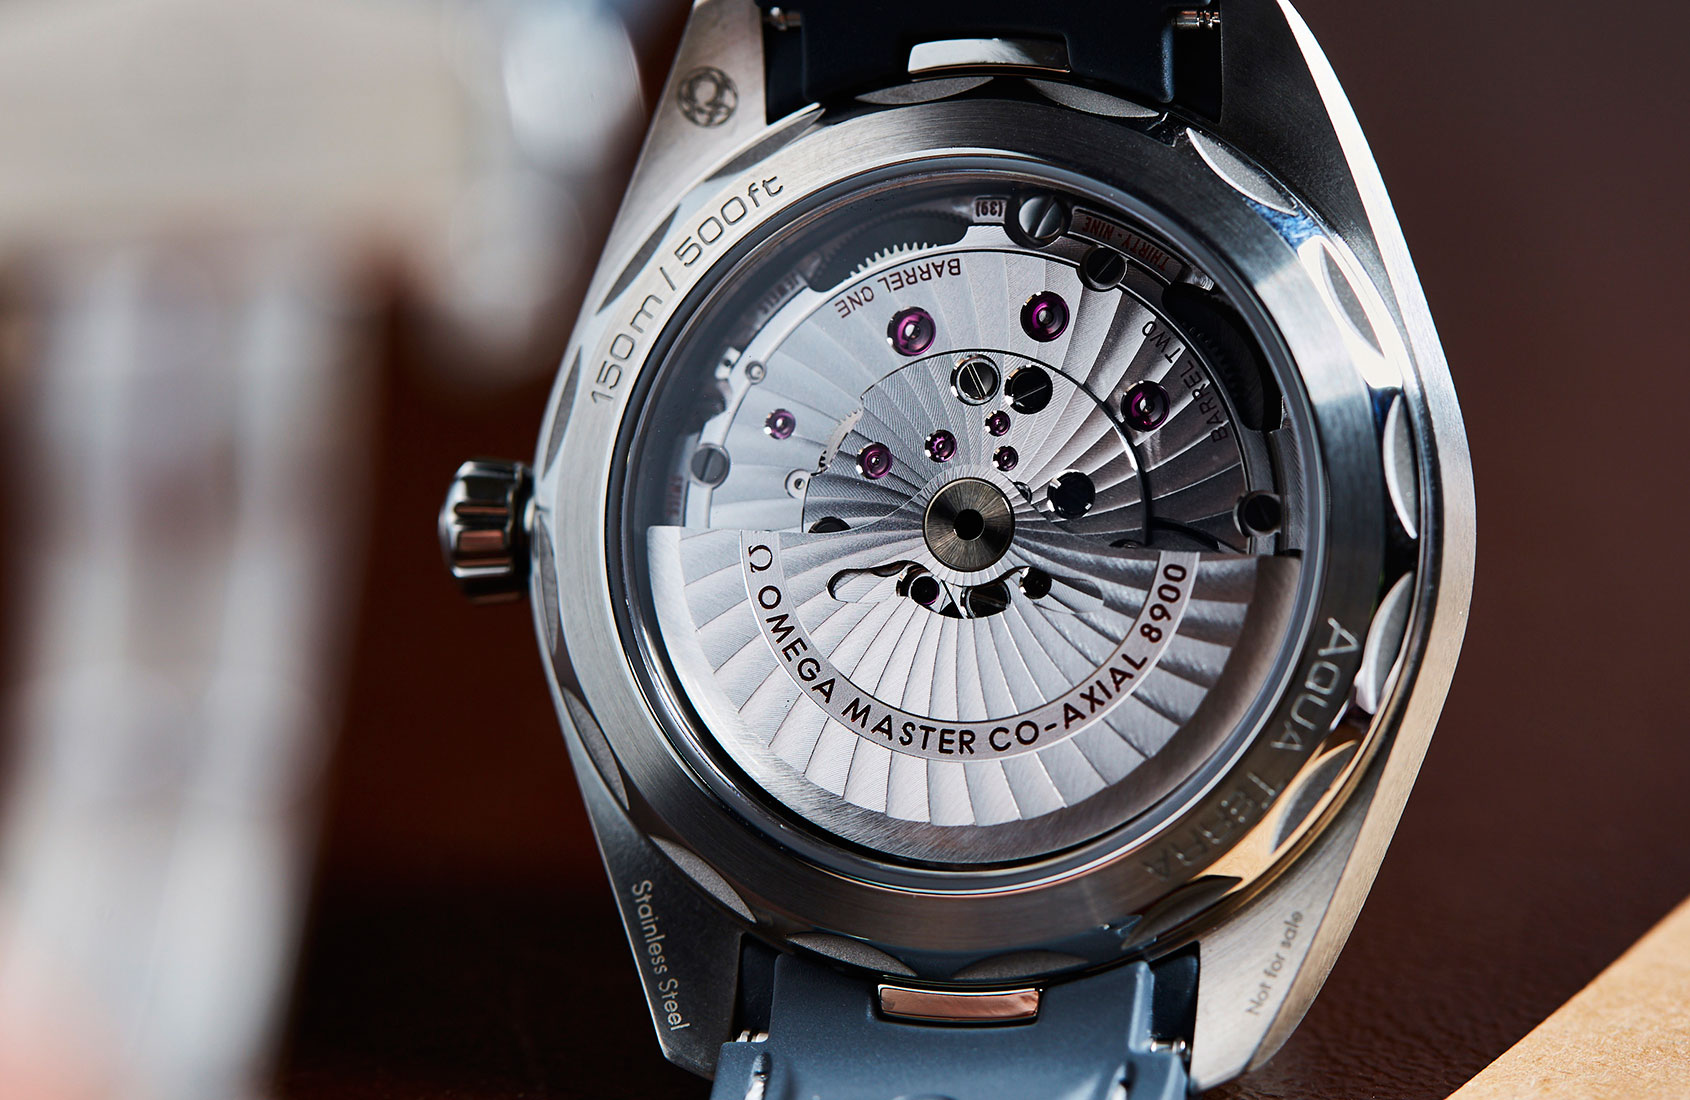 61f46135364 The big story with the movement is that the whole line is now Master  Chronometer certified